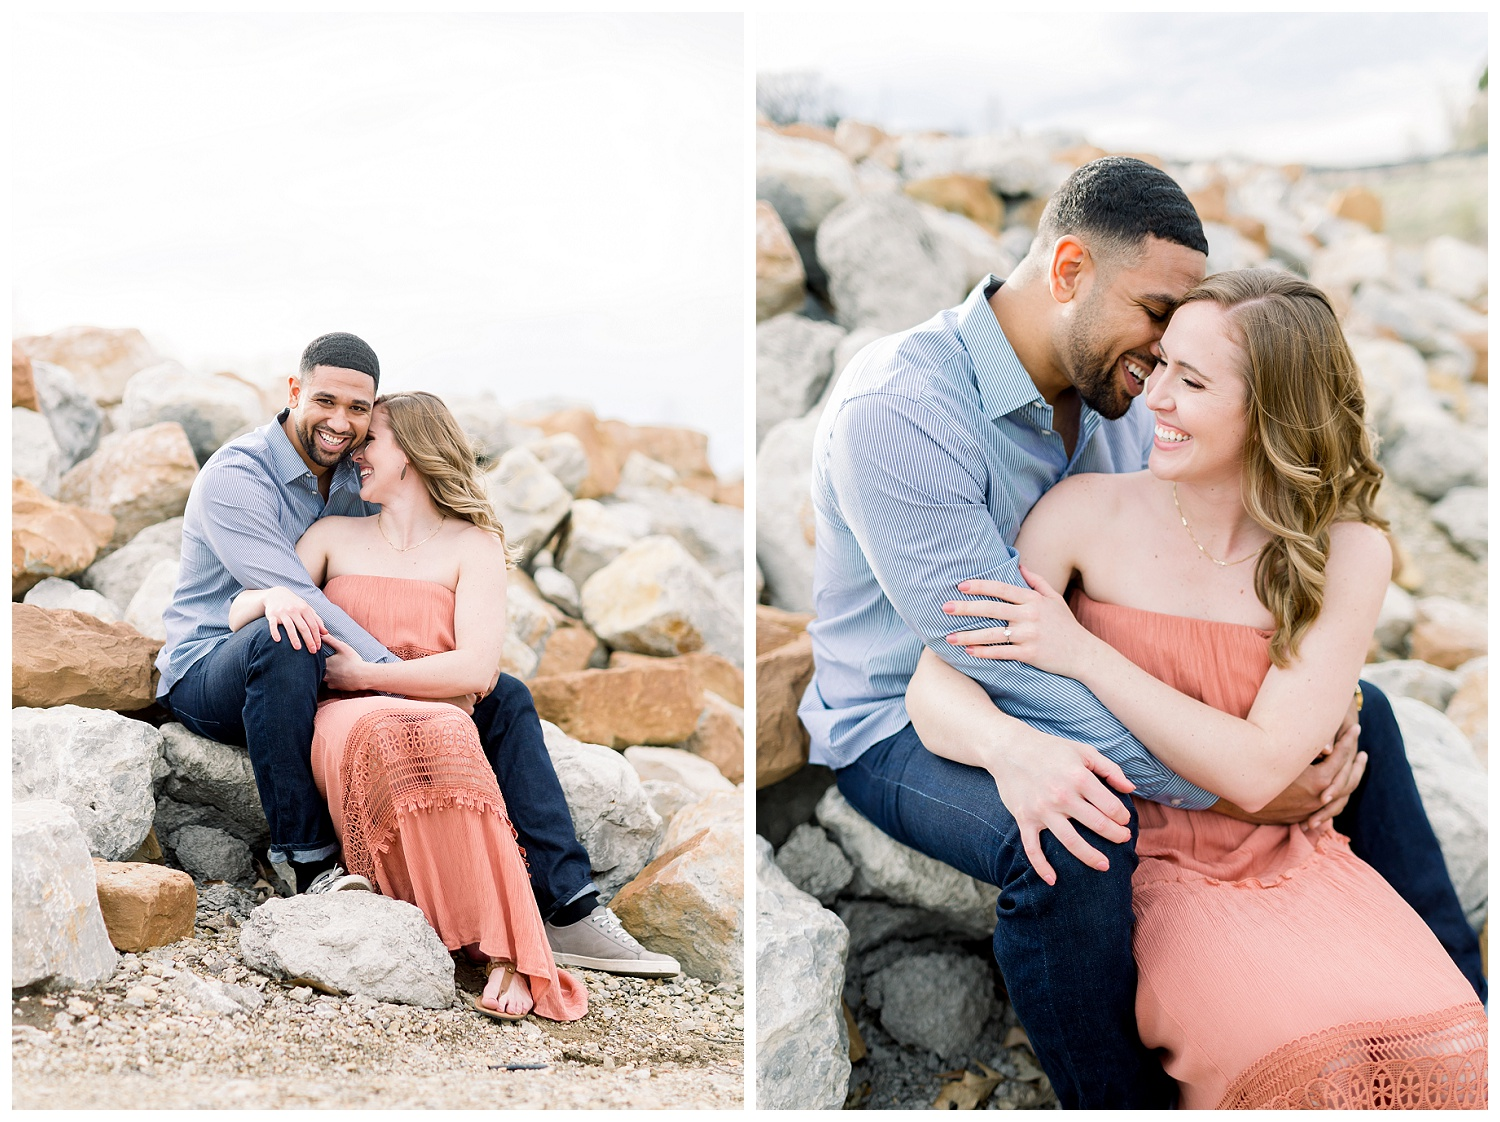 Colorado engagement and wedding photography